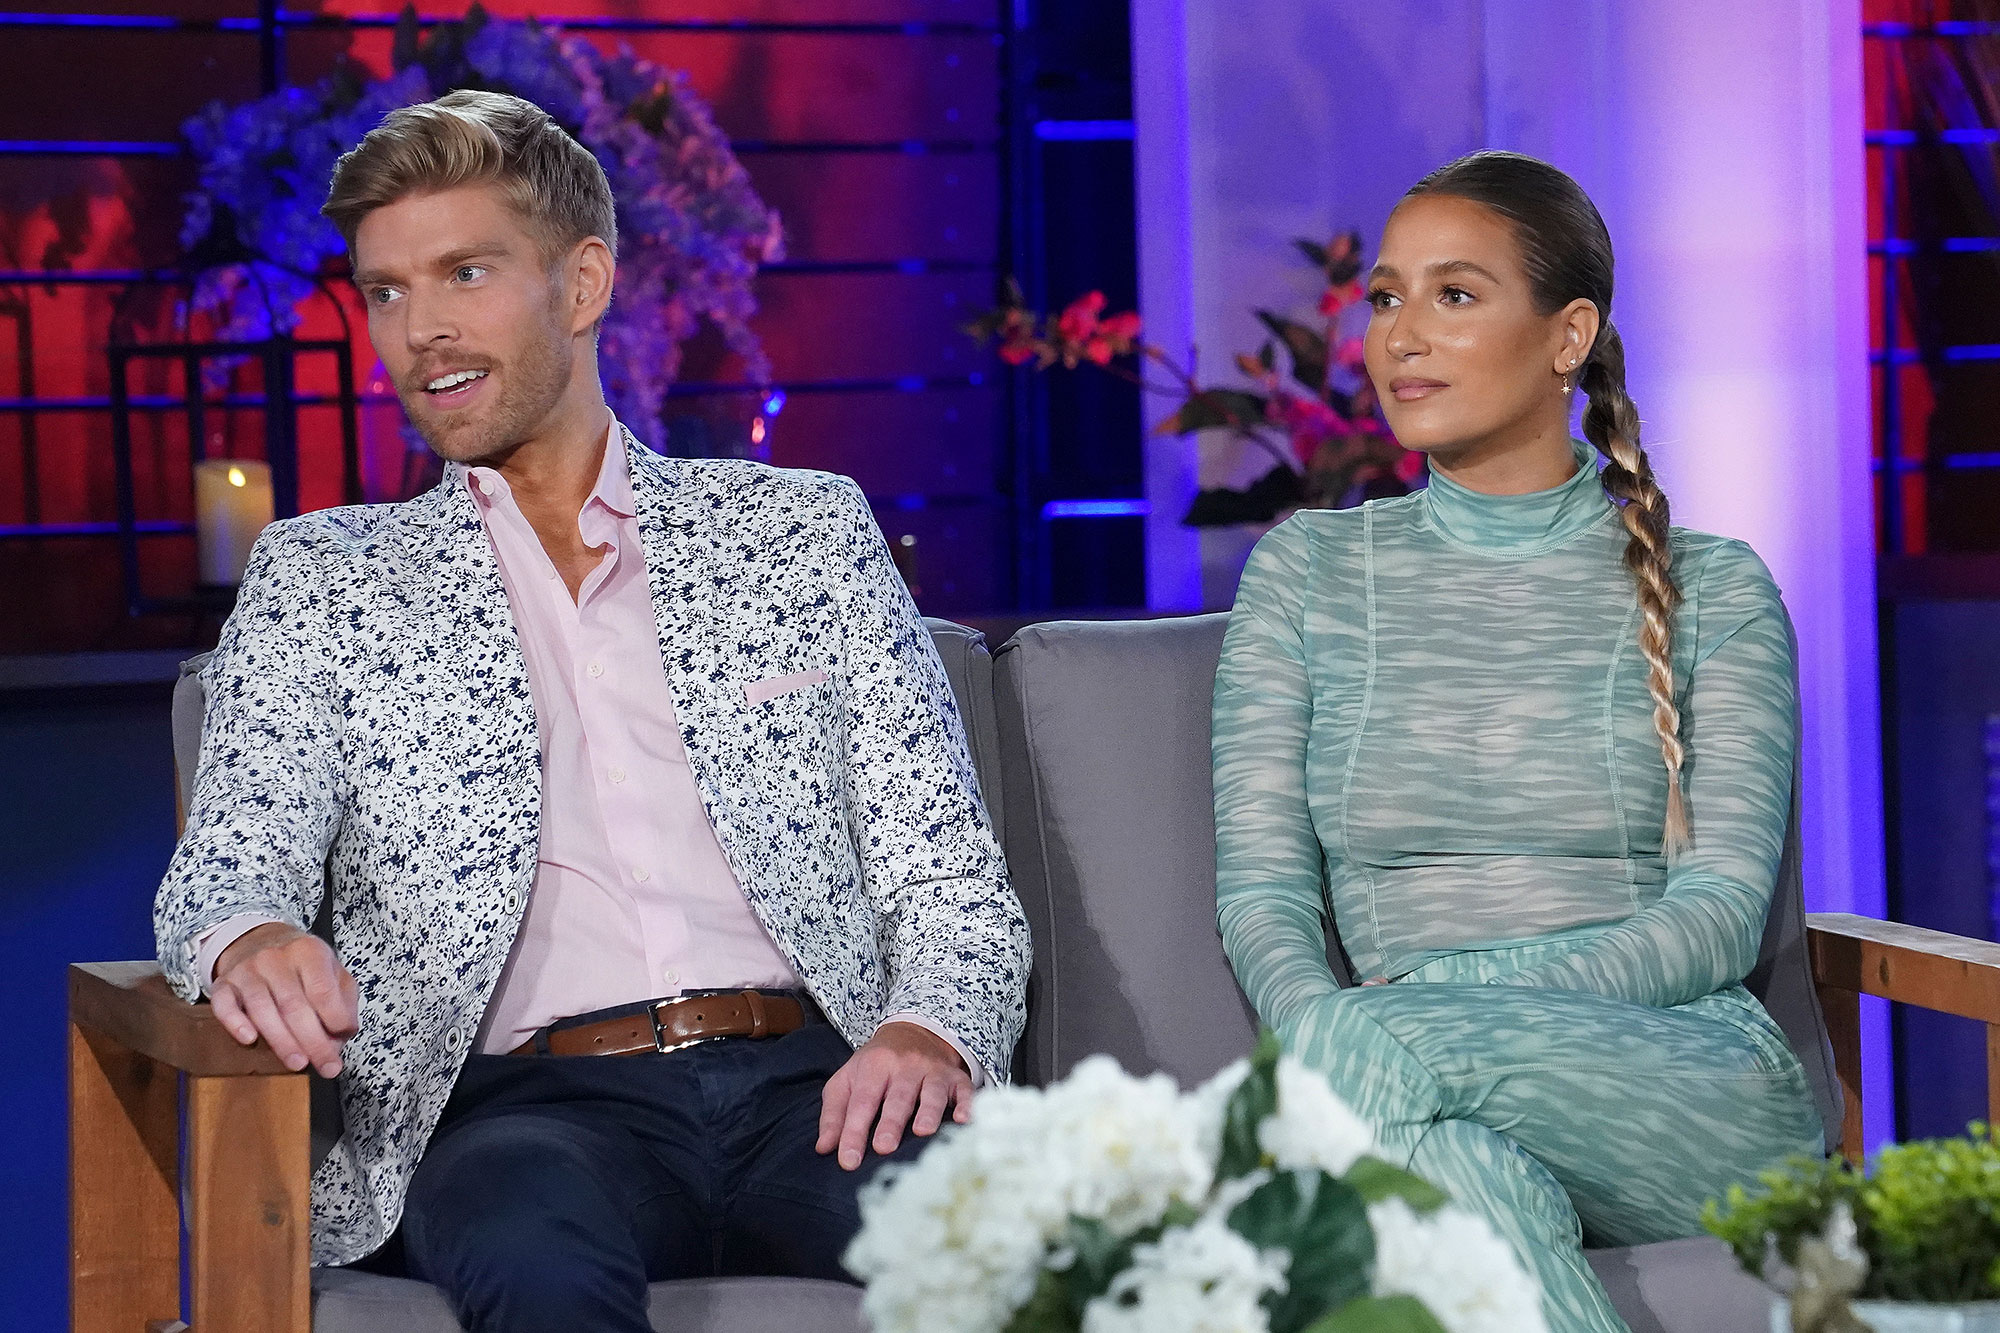 Kyle and Amanda Spill Wedding Details: Who Cried? Did Hannah Reach Out?